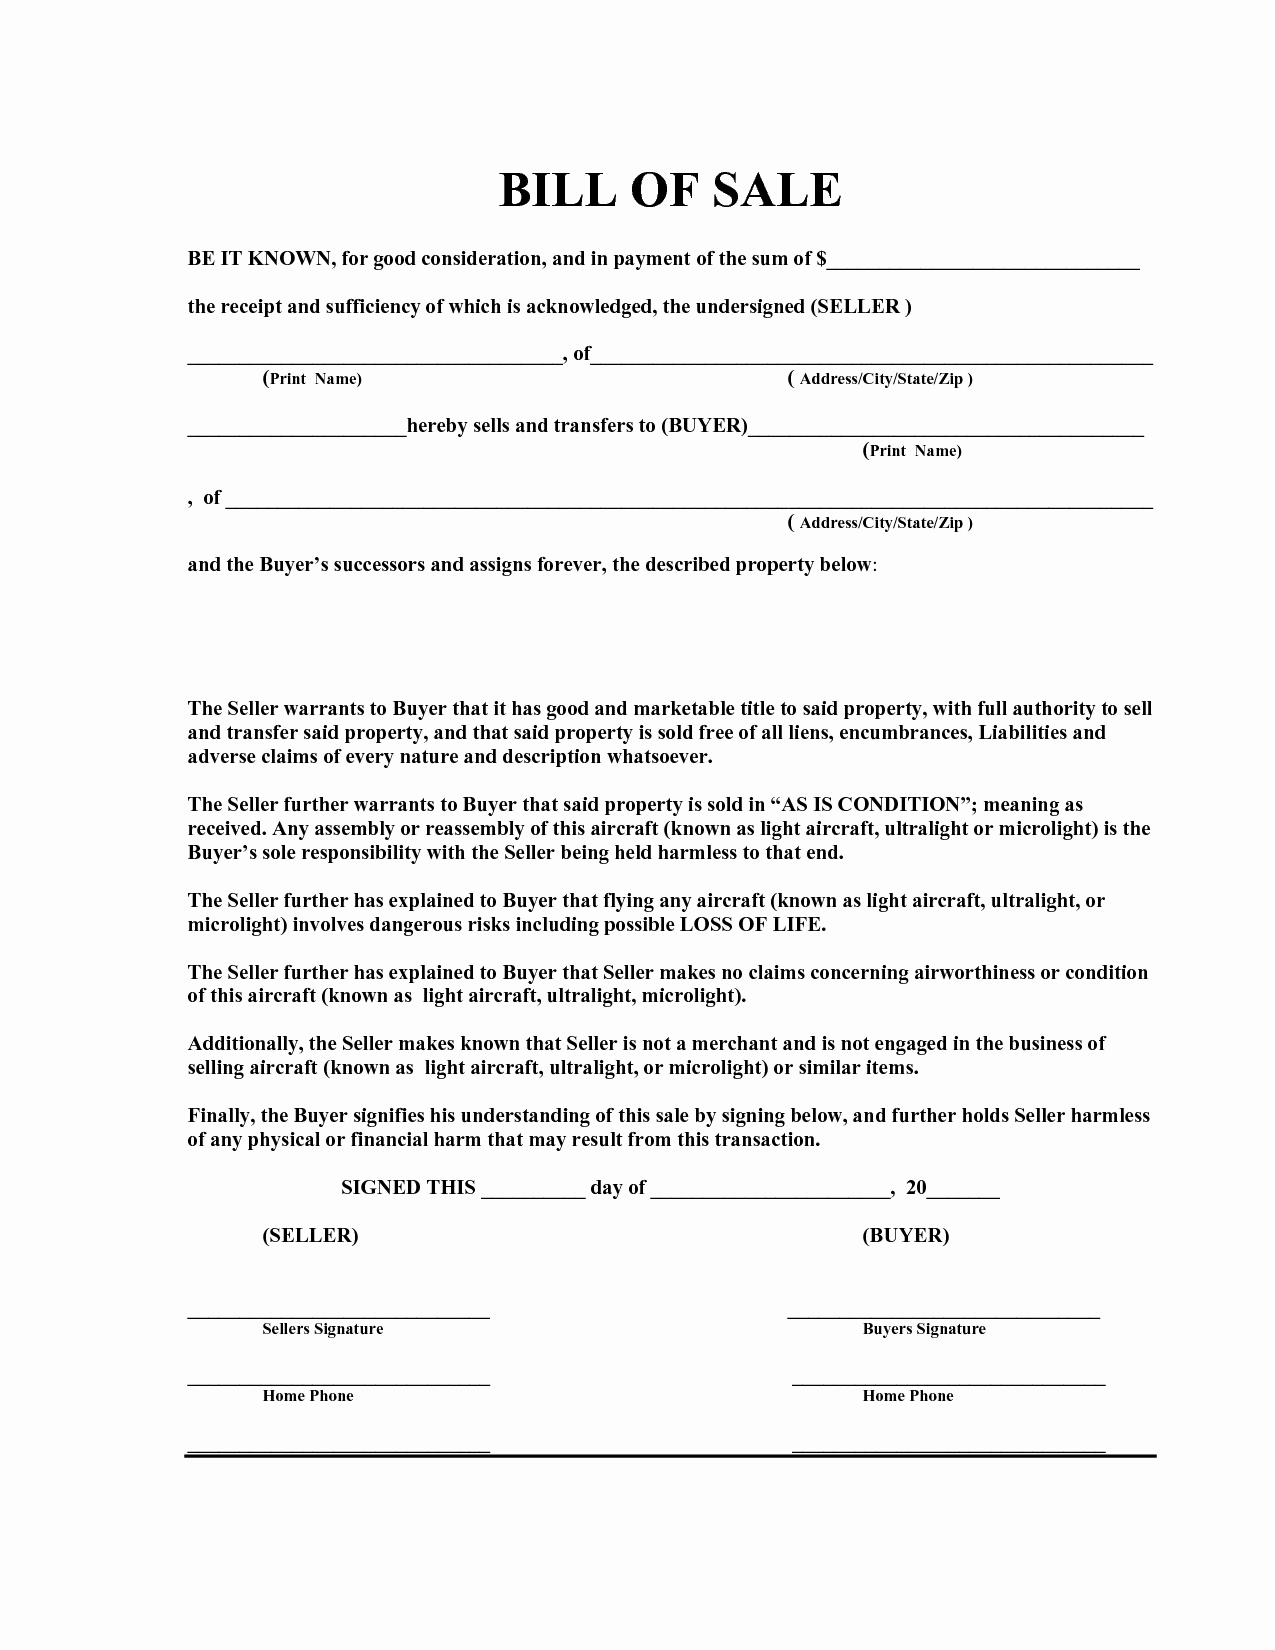 Template Bill Of Sale Car Awesome Free Bill Of Sale Template Pdf by Marymenti as is Bill